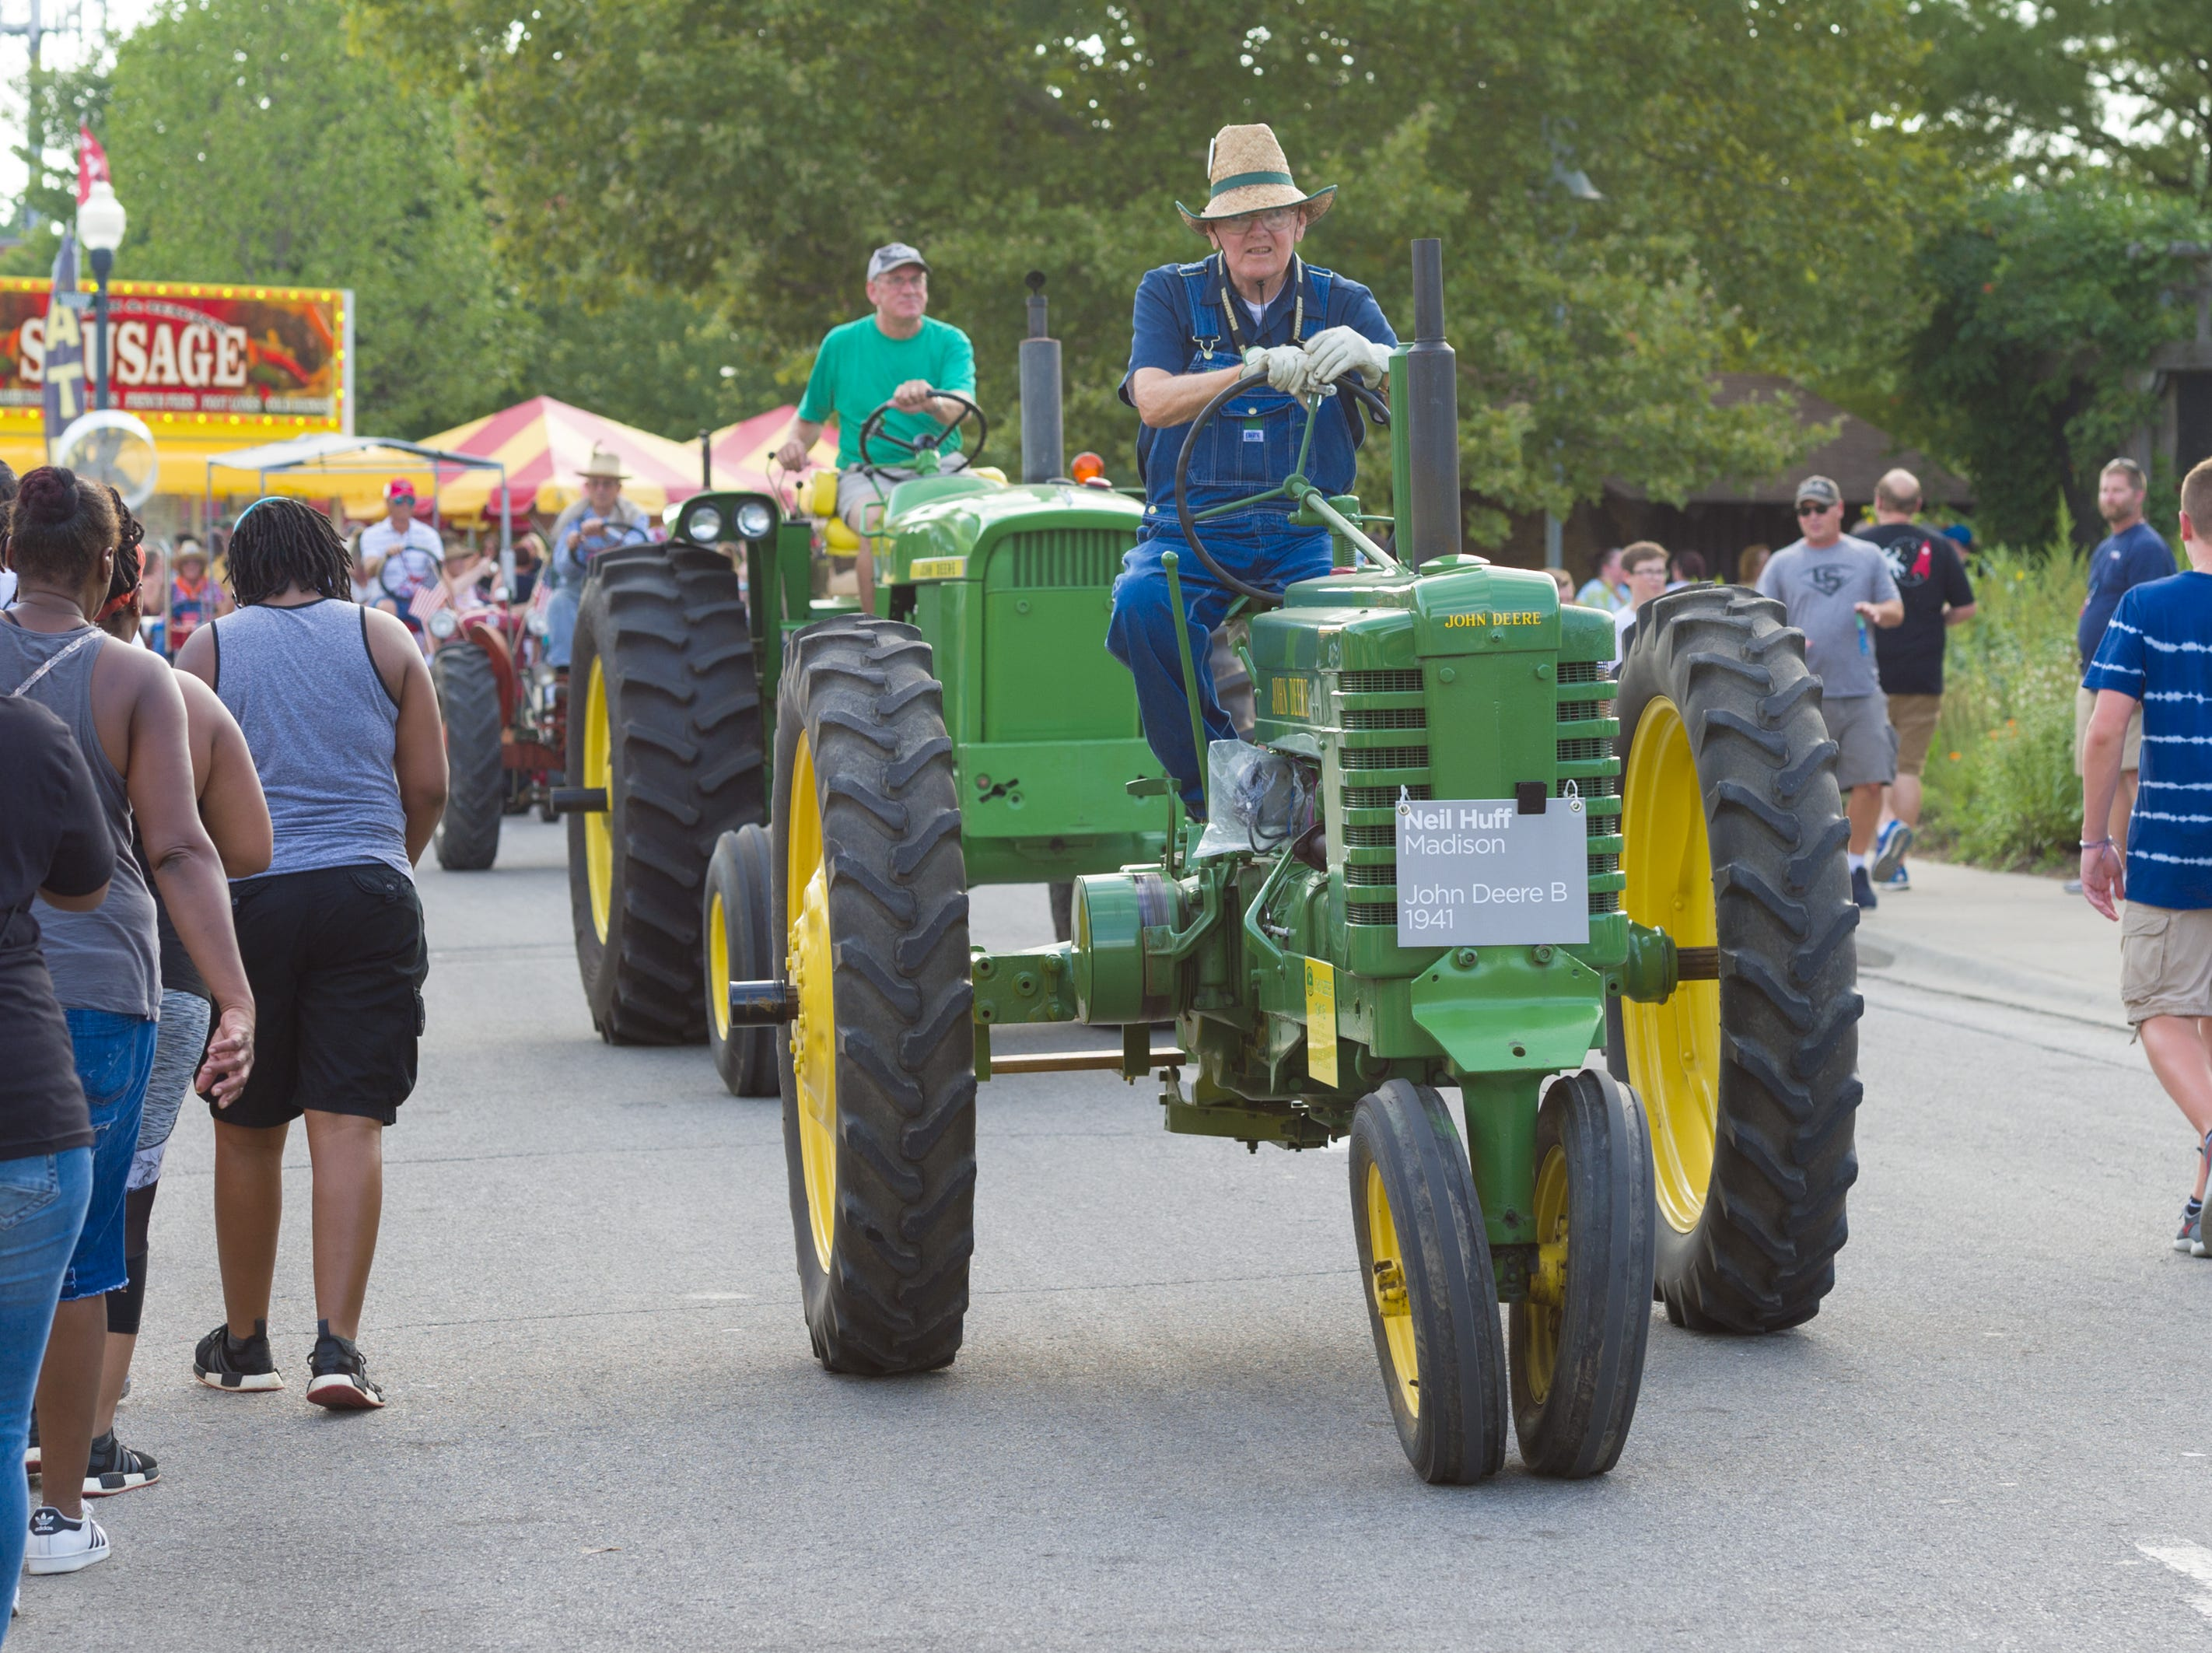 The evening parade navigates around the grounds at the Indiana State Fair, Friday, Aug. 10, 2018.